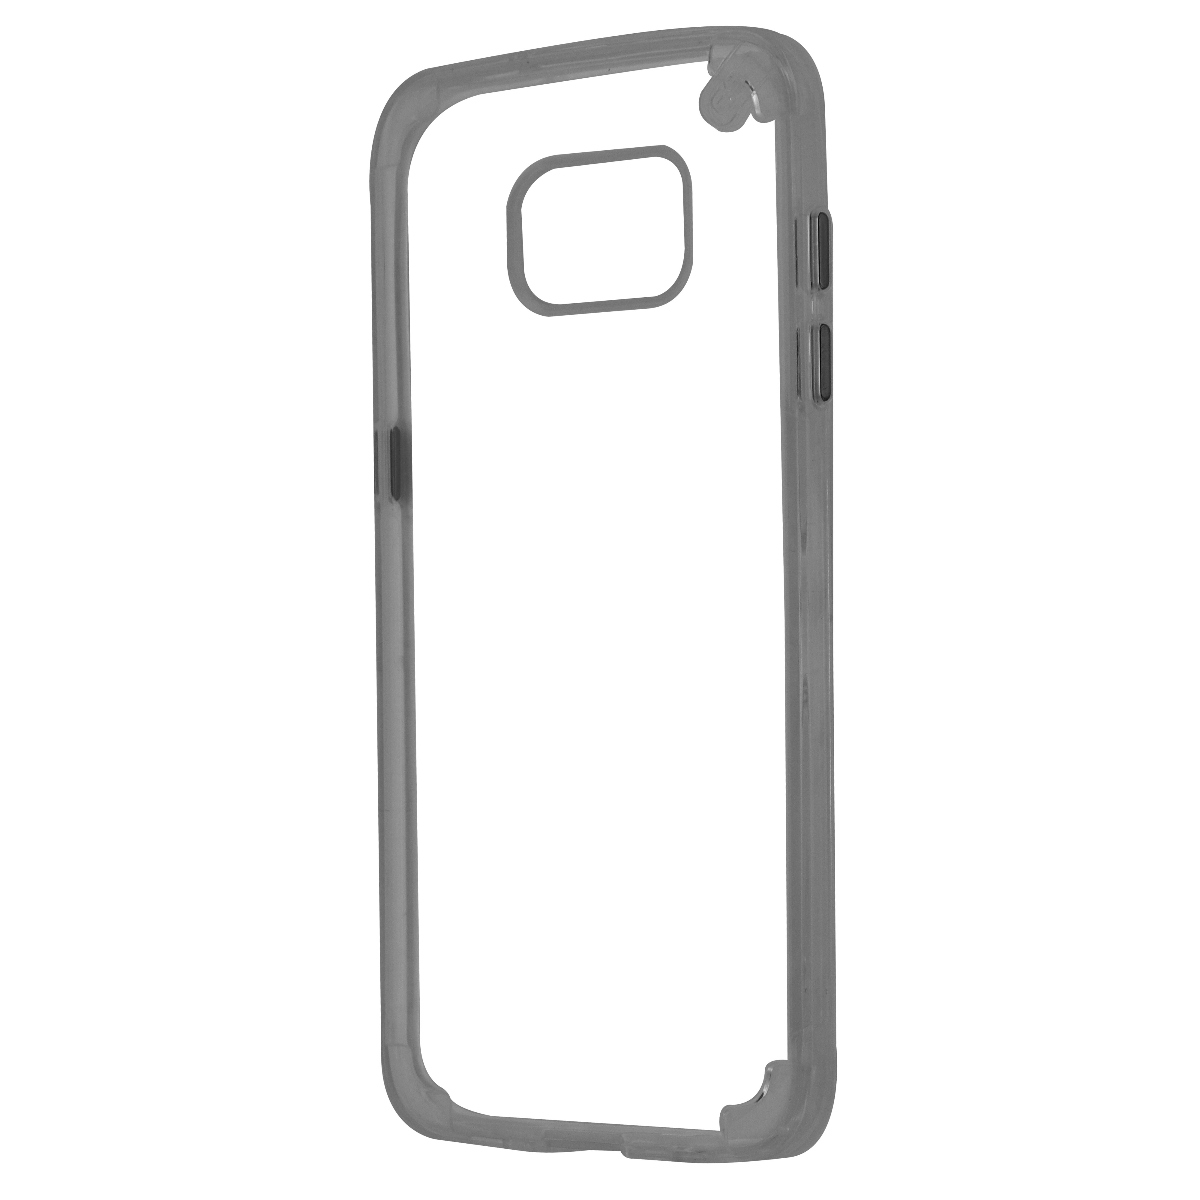 PureGear Slim Shell PRO Protective Case for Samsung Galaxy S7 edge - Clear/Clear